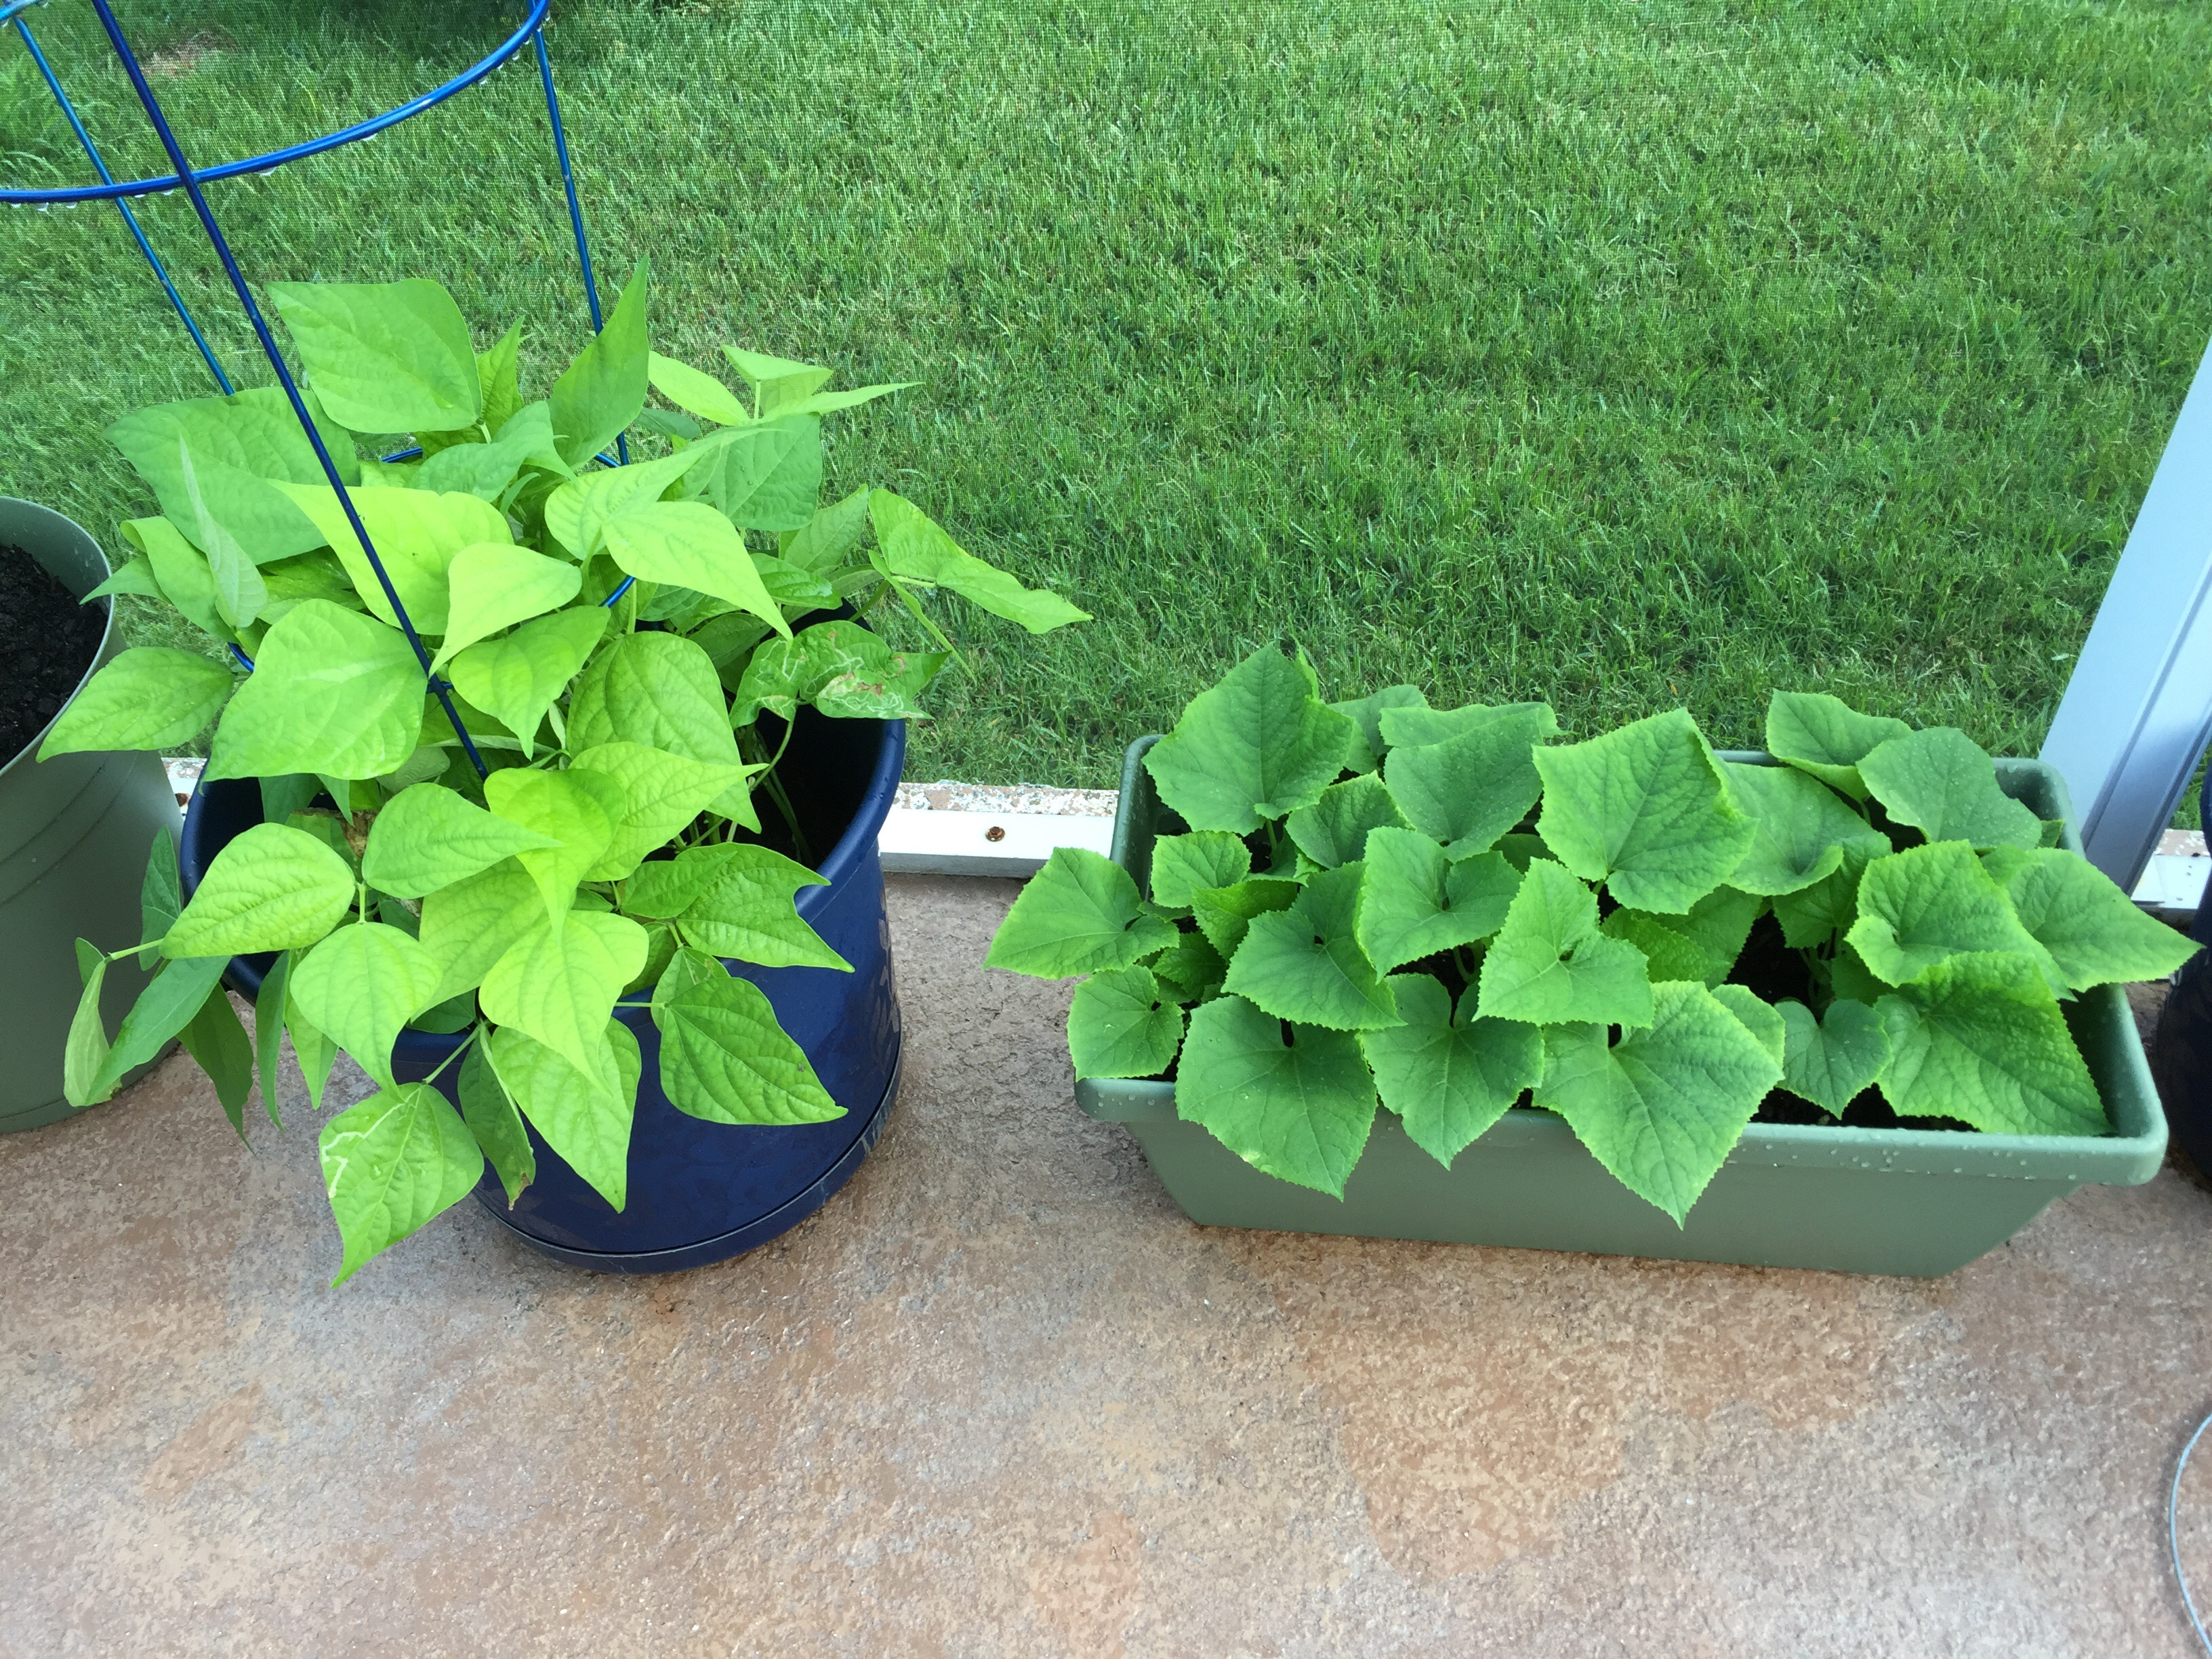 2 Gals Florida Container Gardening An Experiment In Gardening On The Lanai